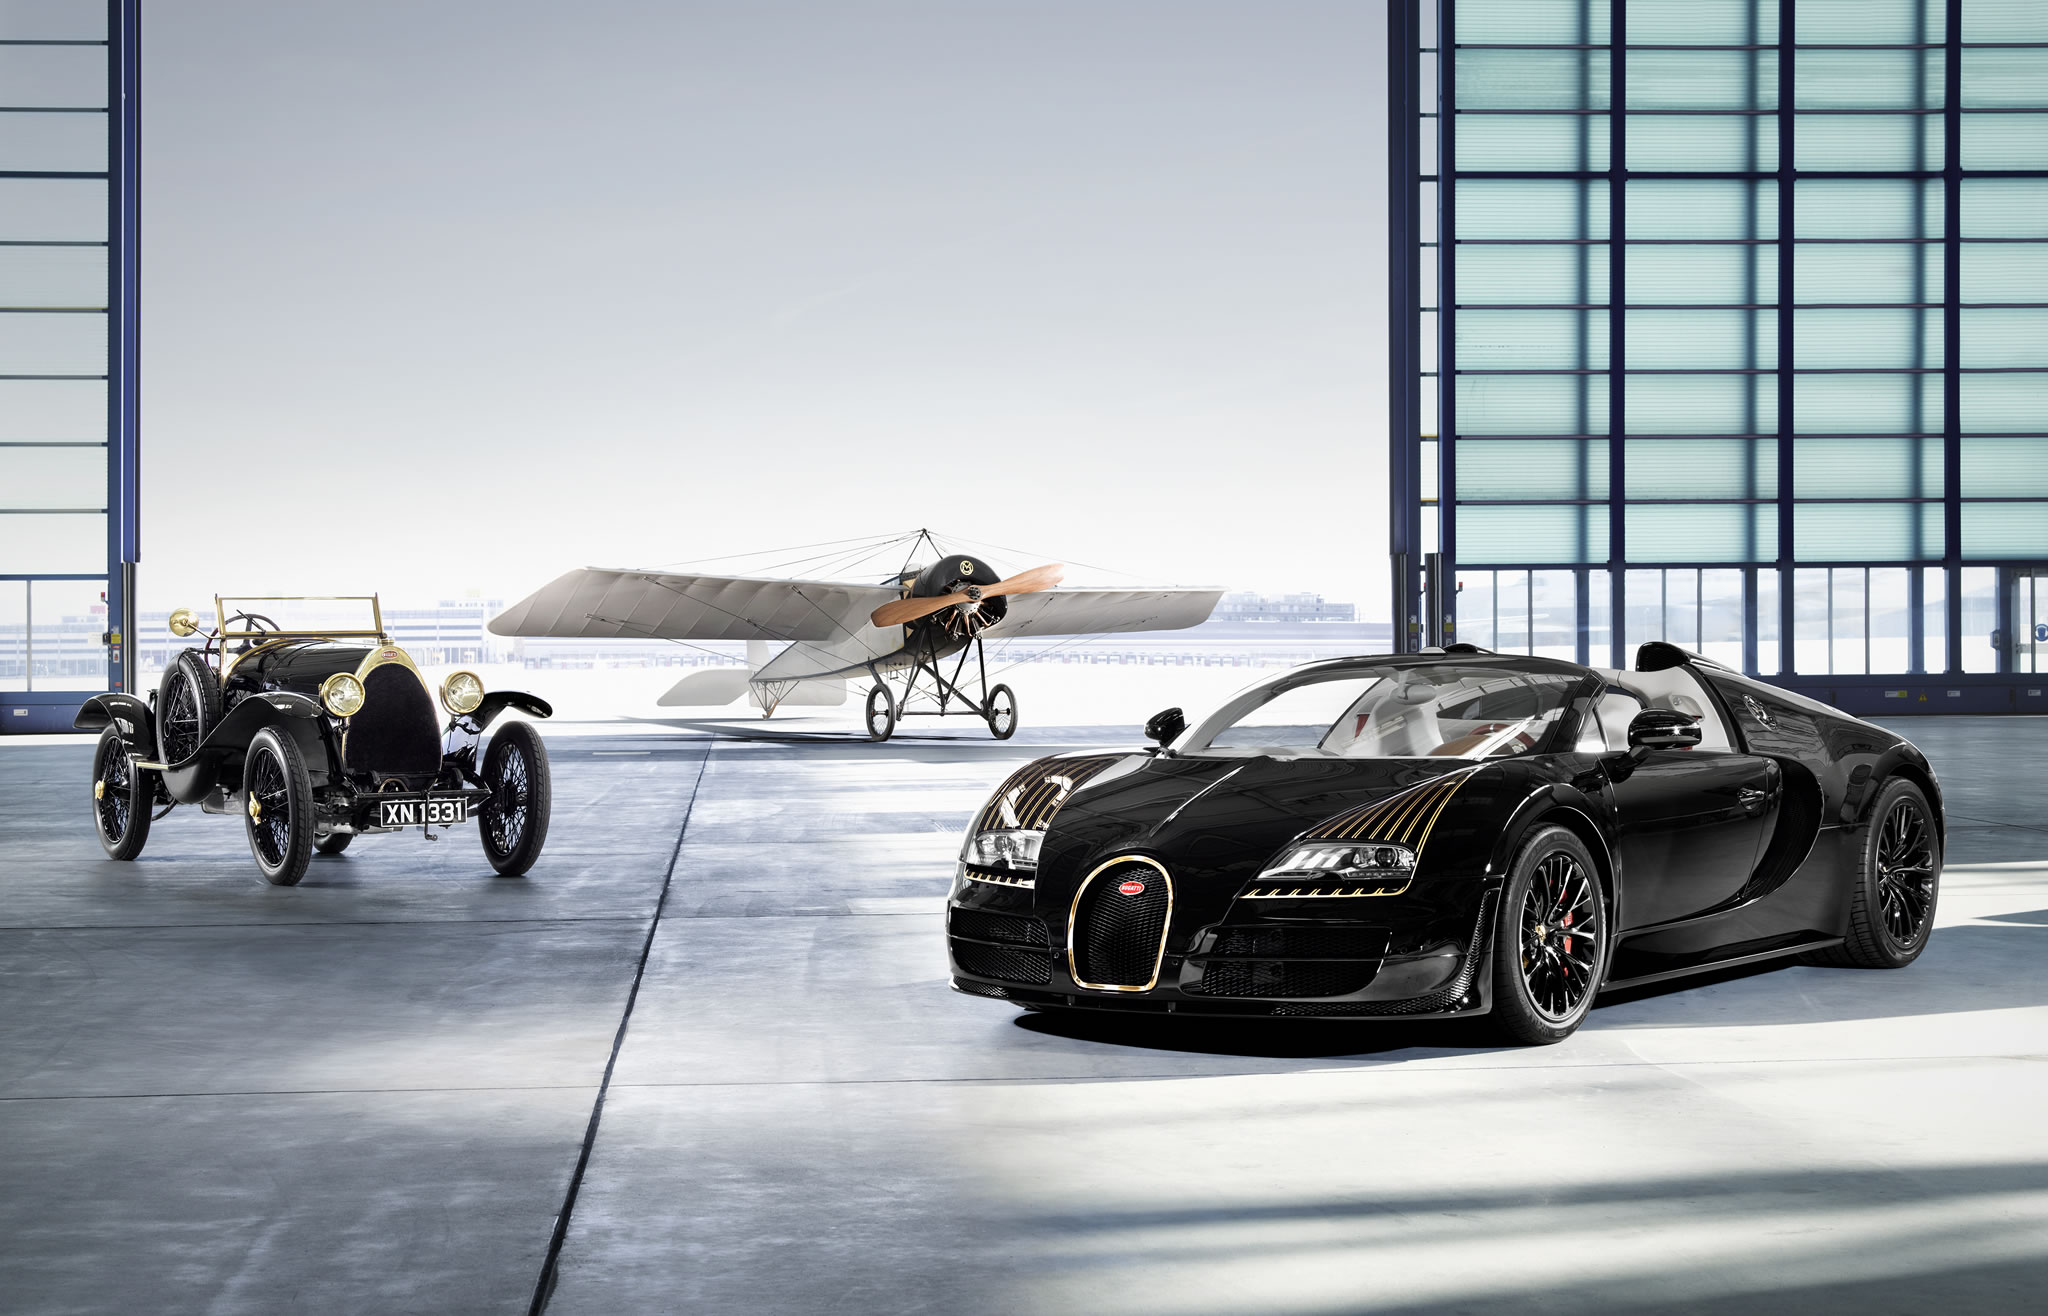 2014 bugatti veyron 16 4 grand sport vitesse black bess front photo size 2048 x 1316 nr 3. Black Bedroom Furniture Sets. Home Design Ideas